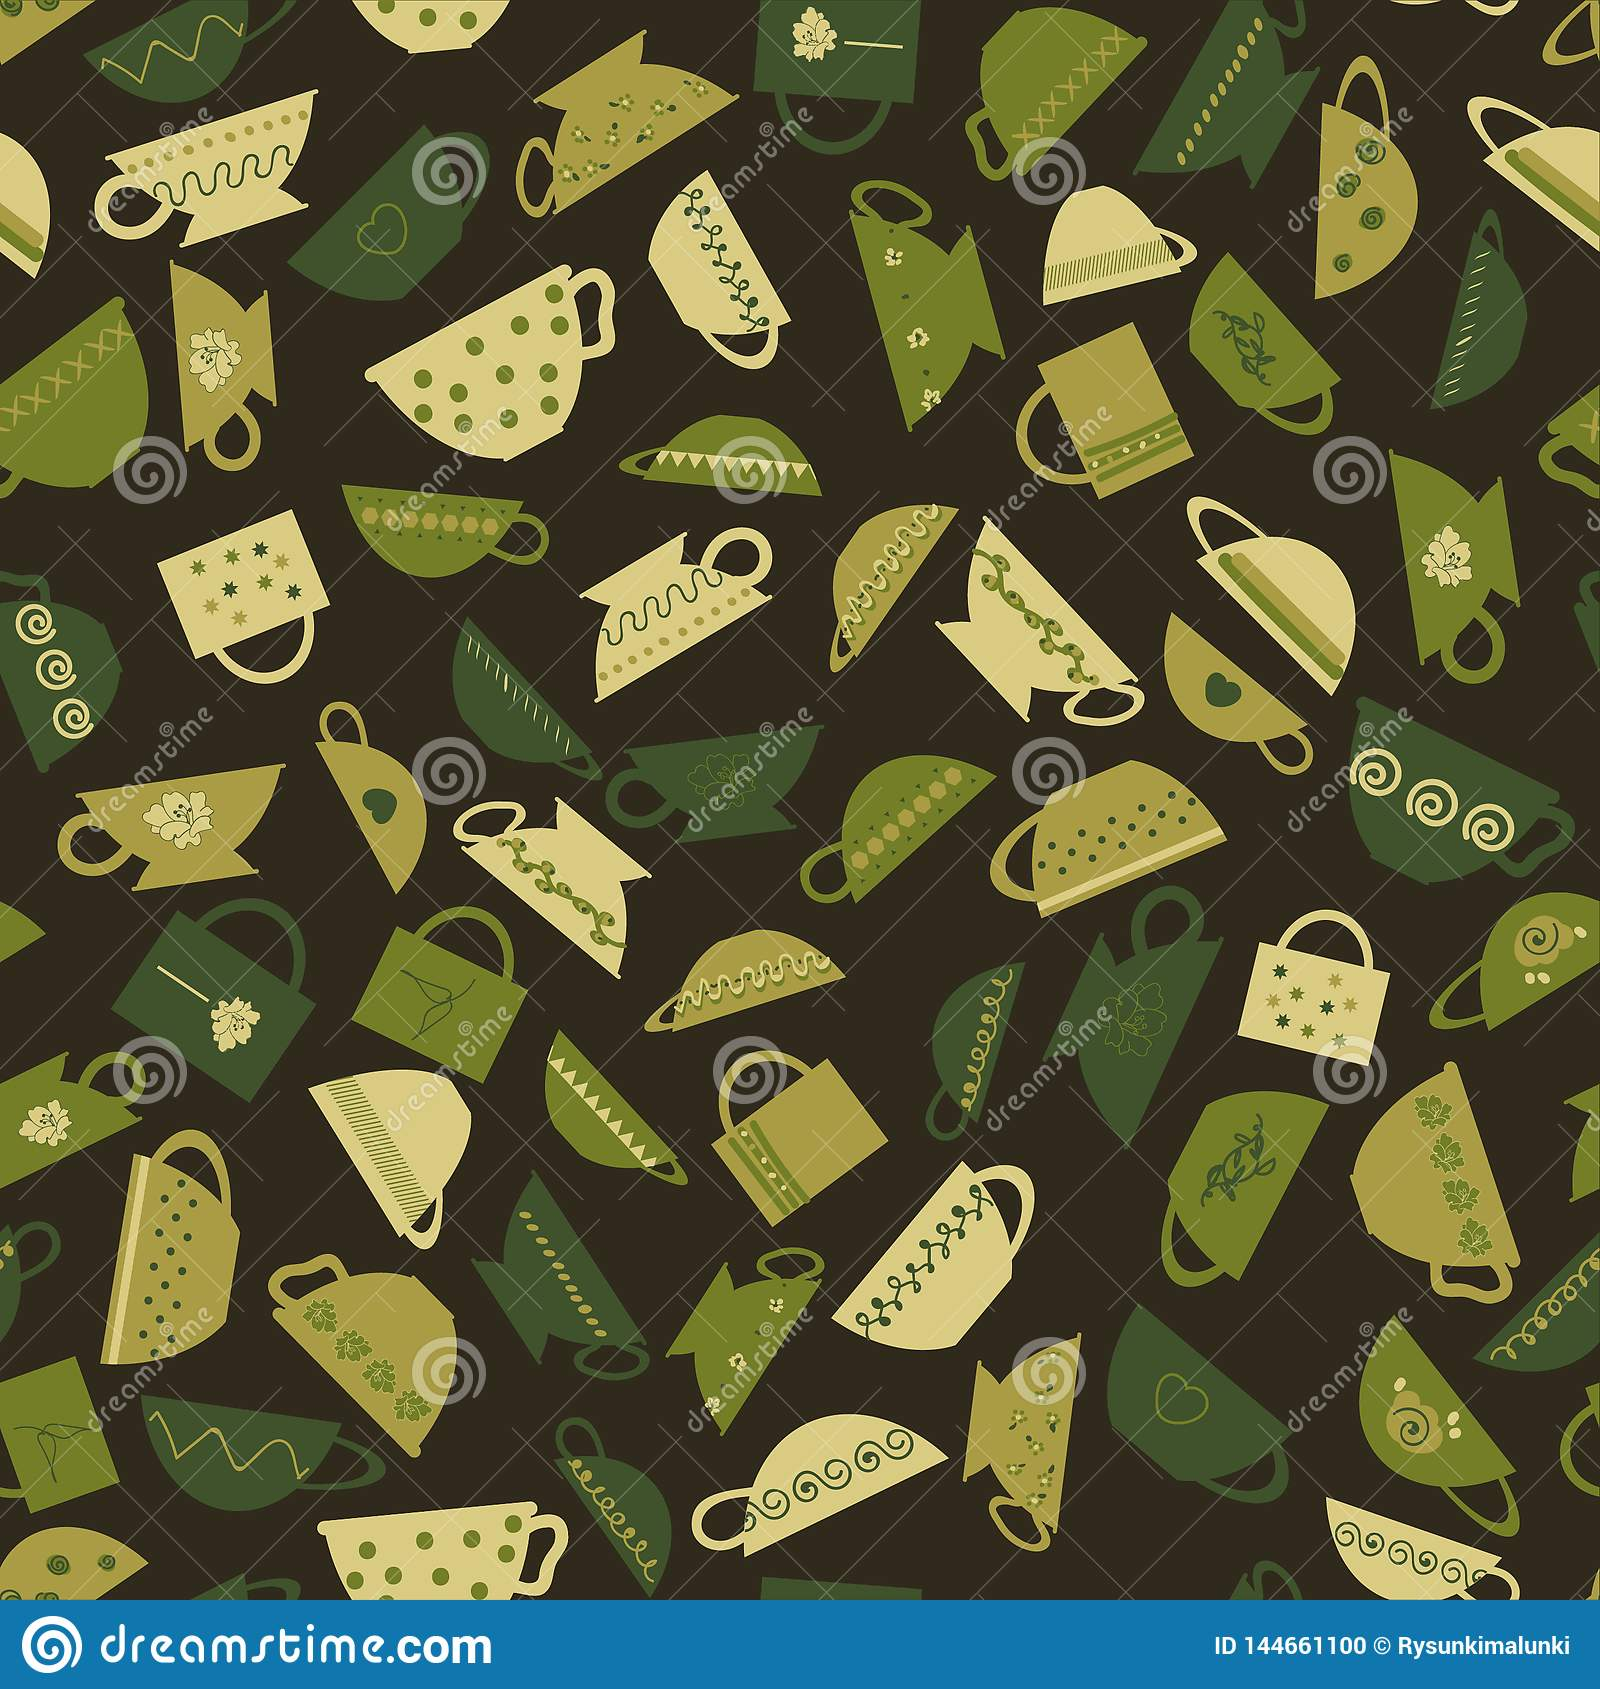 Seamless vector pattern with green teacups